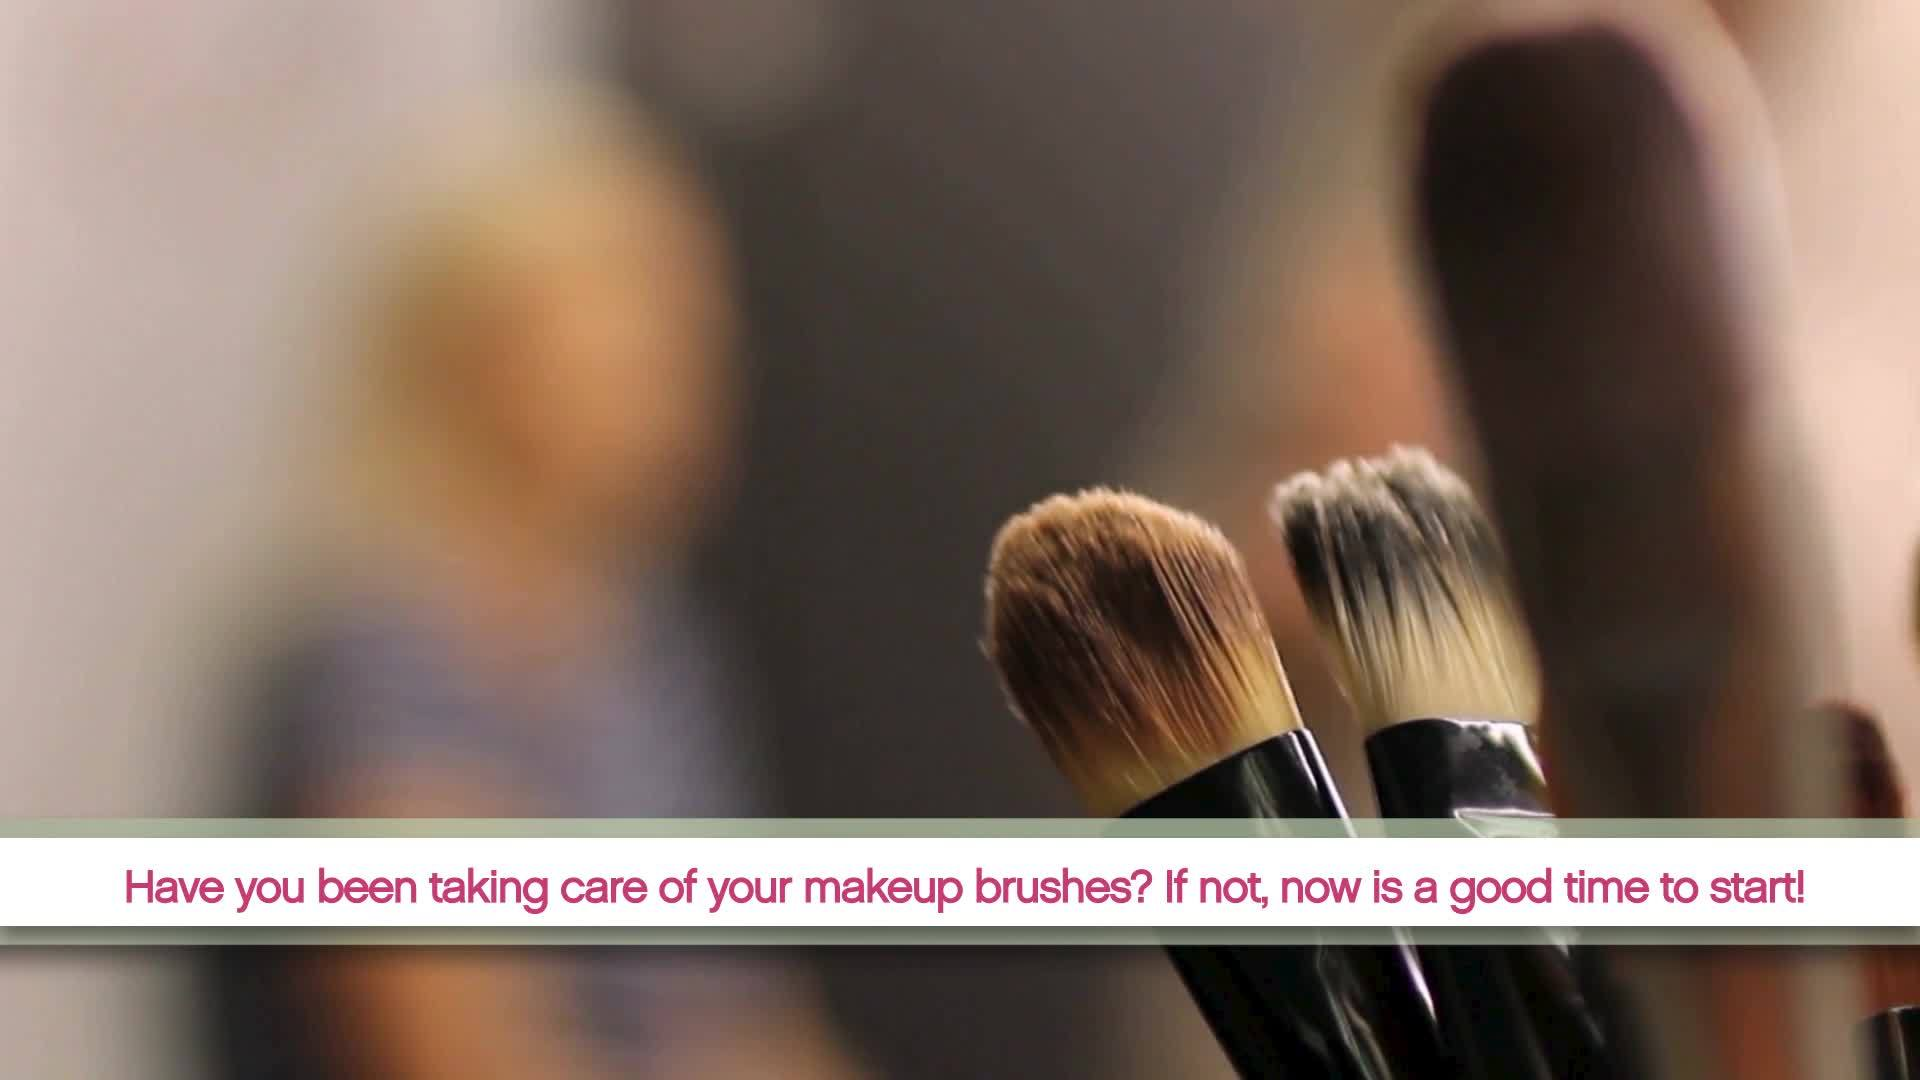 The_hard_facts__why_cleaning_your_makeup_8_20190423203146